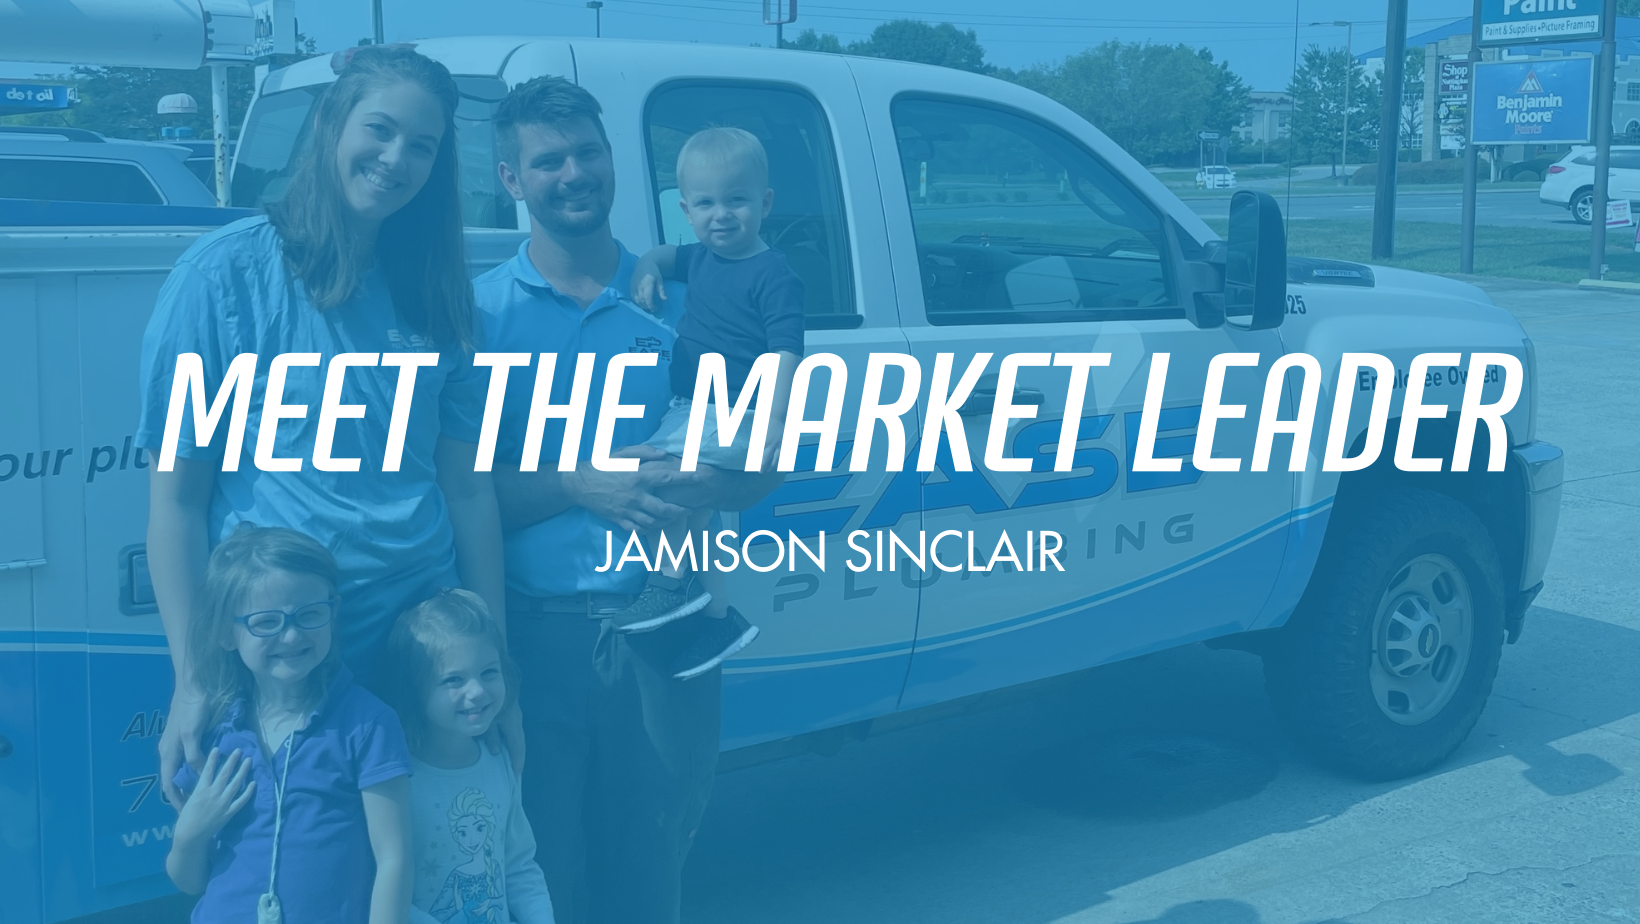 Ease Plumbing Welcomes Jamison Sinclair as the Newest Market Leader in Monroe, NC